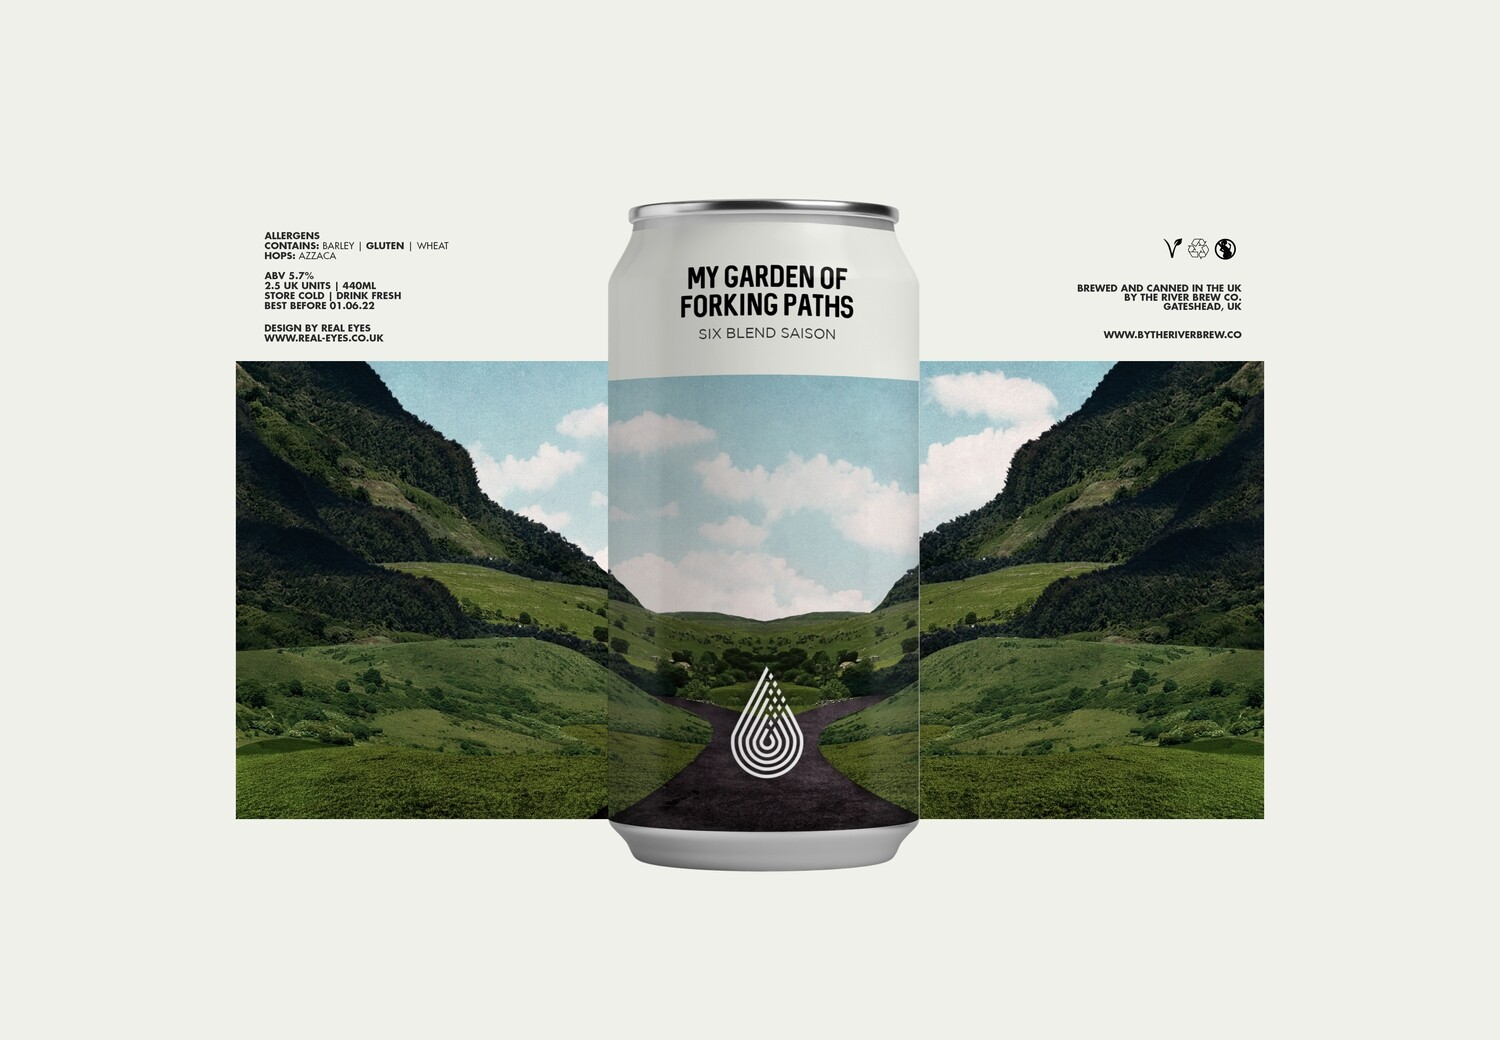 My Garden Of Forking Paths | Six Blend Saison | By The River Brew Co. | ABV 5.7% | 1 x 440ml Can